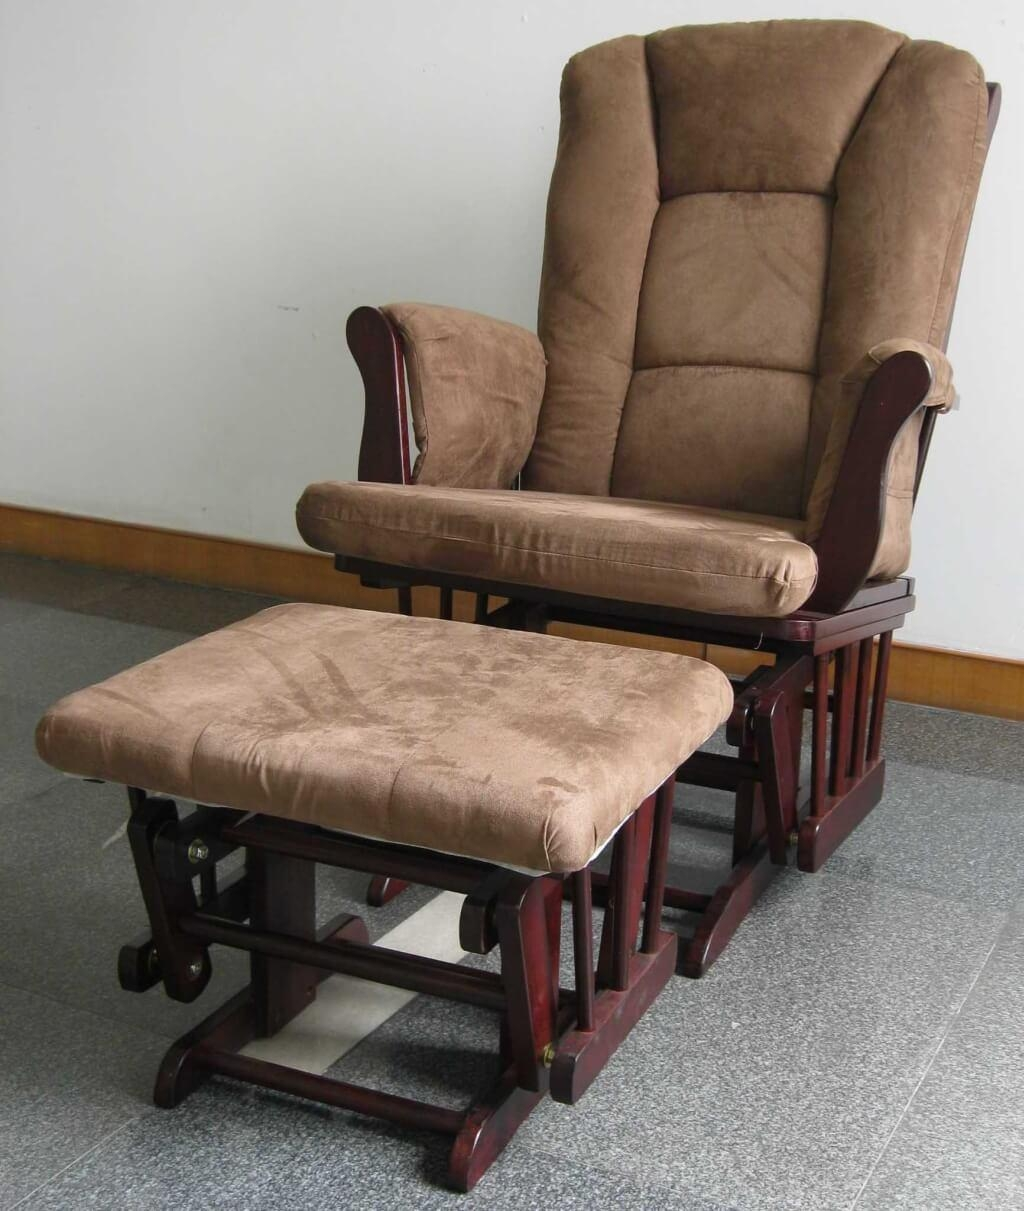 Sofa Brown Rocking Chair For Nursery | Tamingthesat With Sofa Rocking Chairs (View 8 of 20)